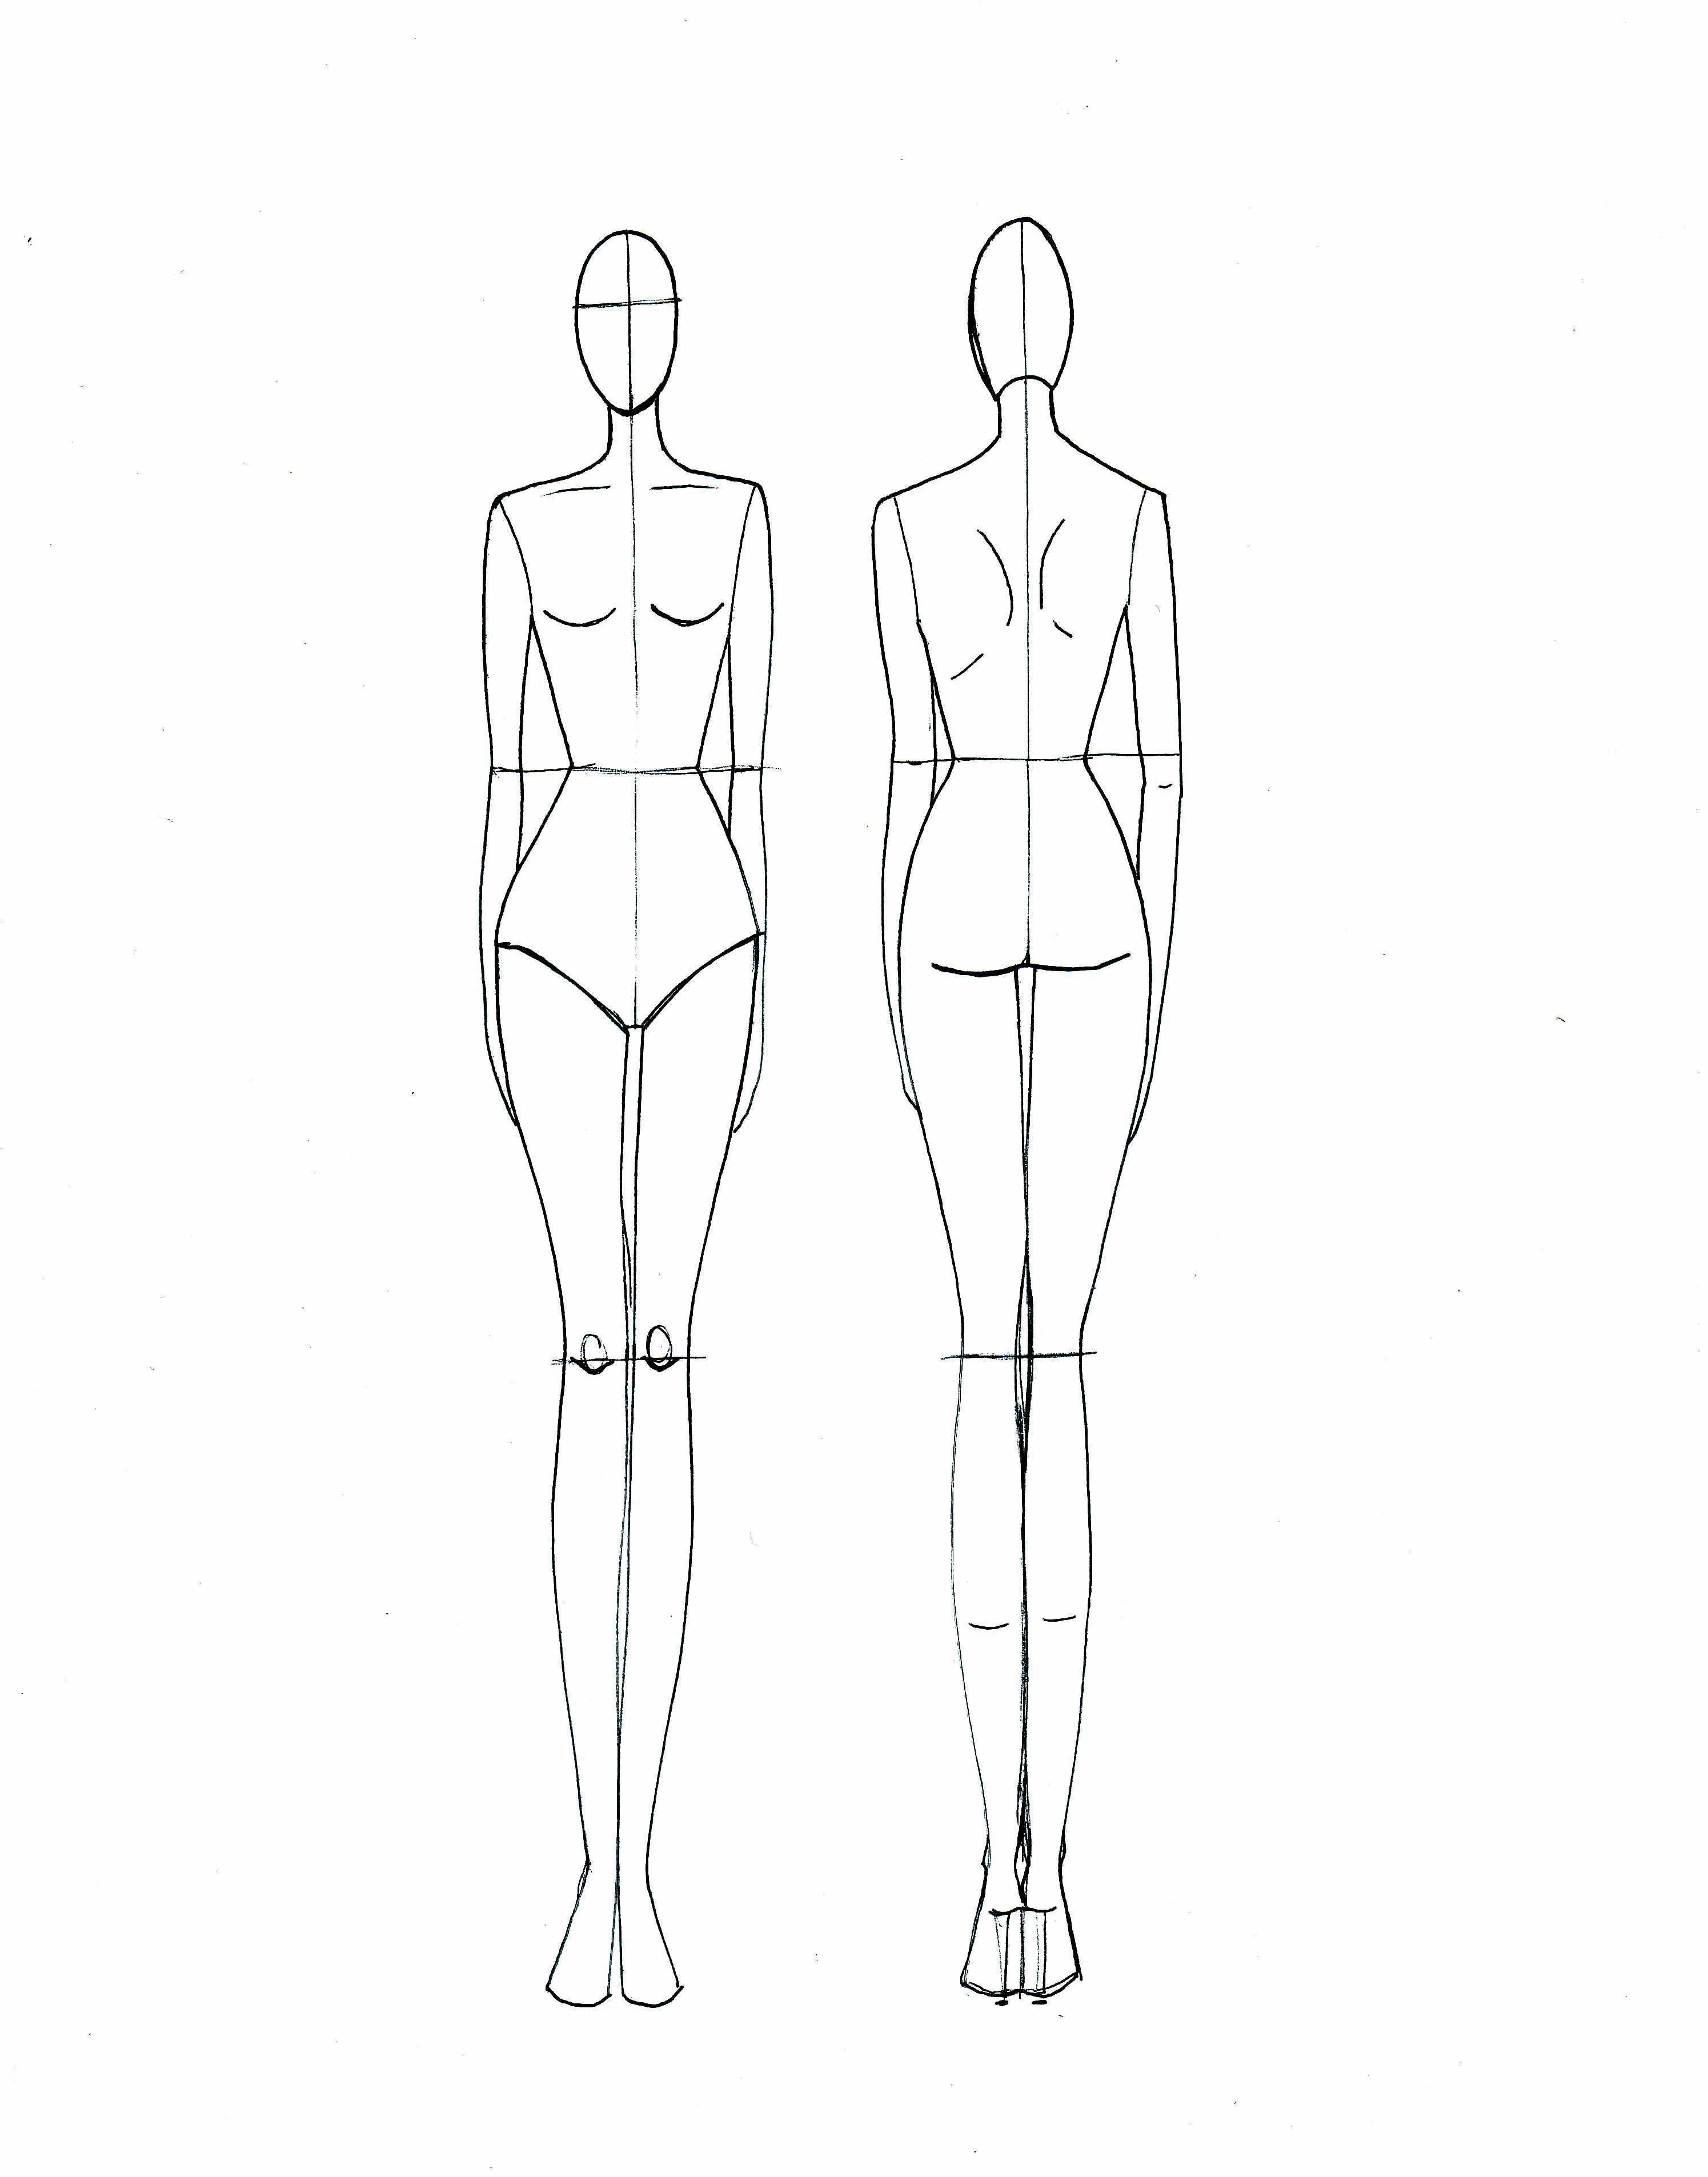 Fashion Drawing Template Fashion Sketch Template Fashion Illustration Template Fashion Design Template